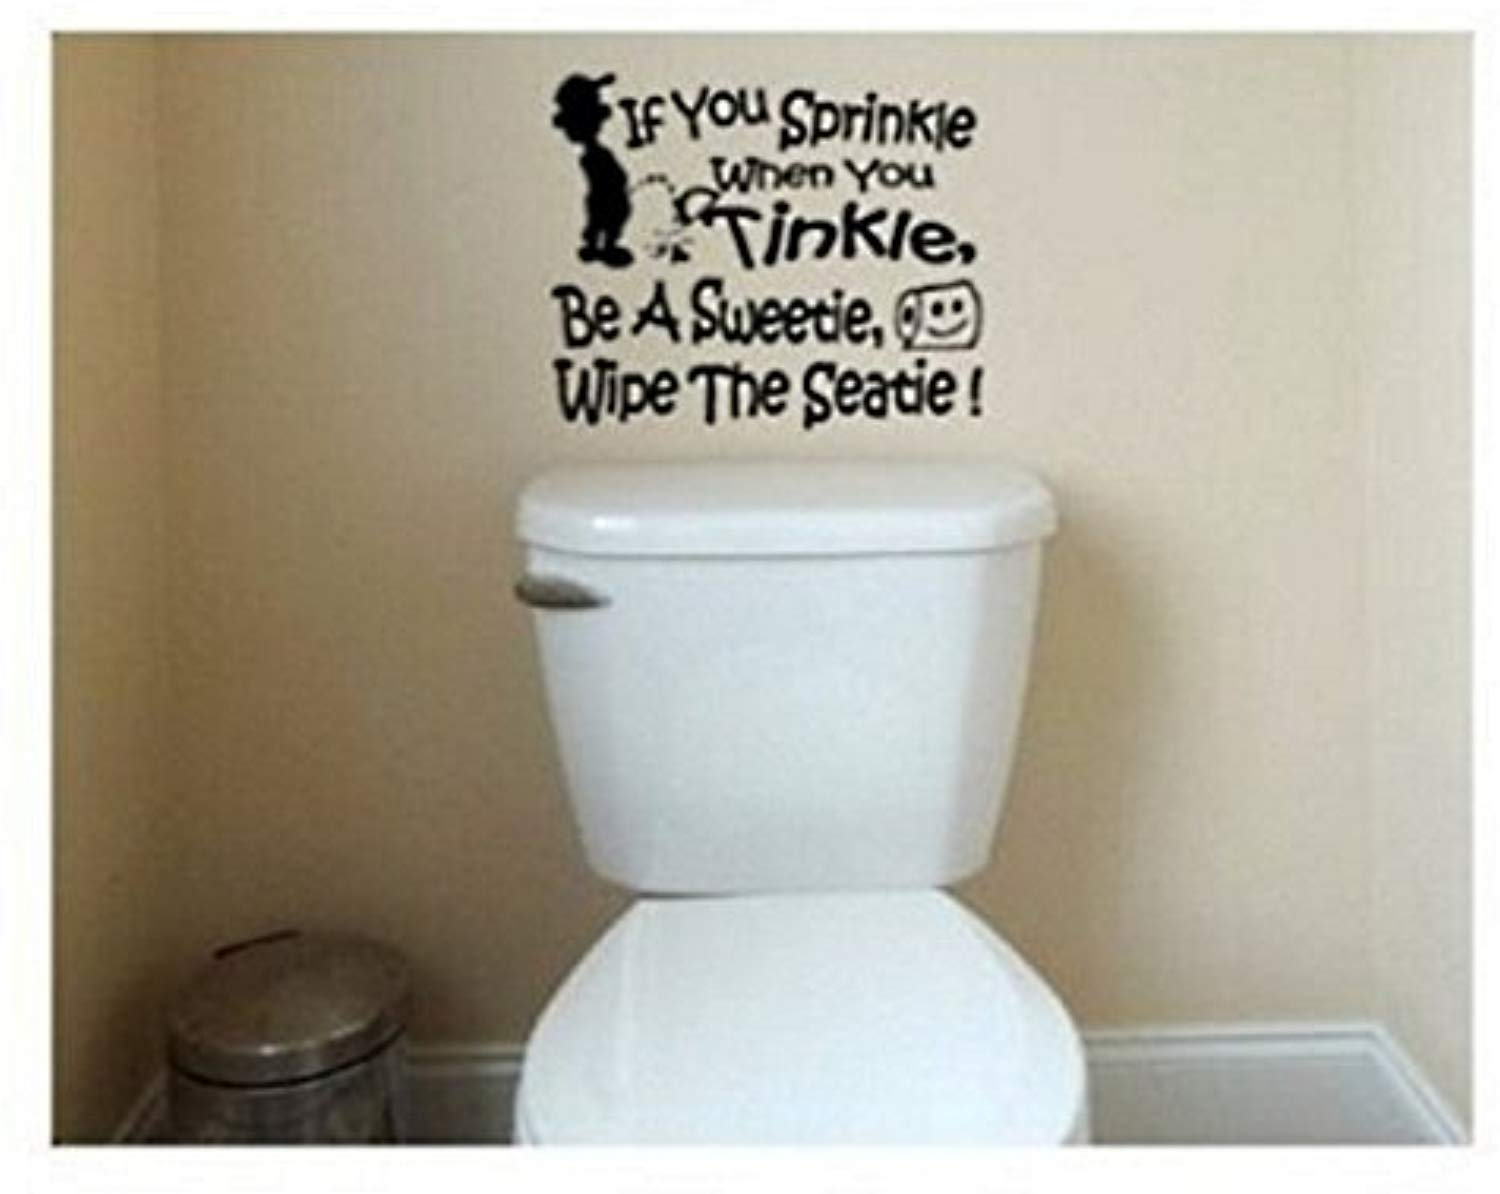 If You Sprinkle Wall Decal removable bathroom quote sticker funny decor mural